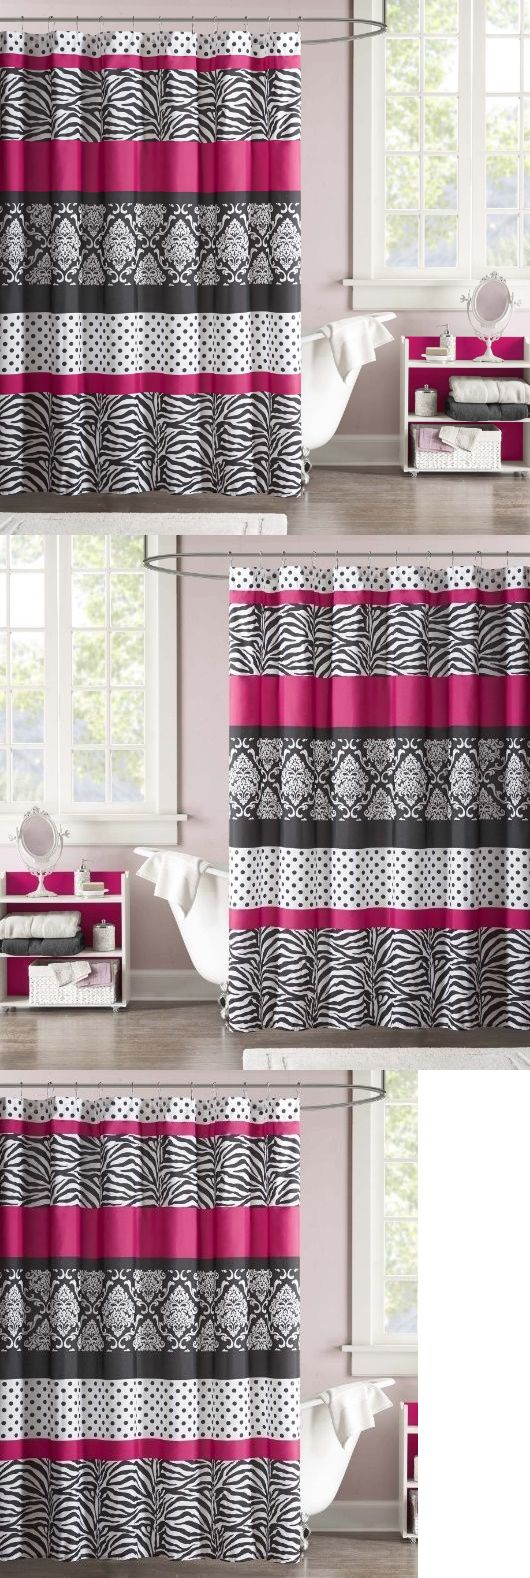 best 25+ zebra print bathroom ideas only on pinterest | zebra